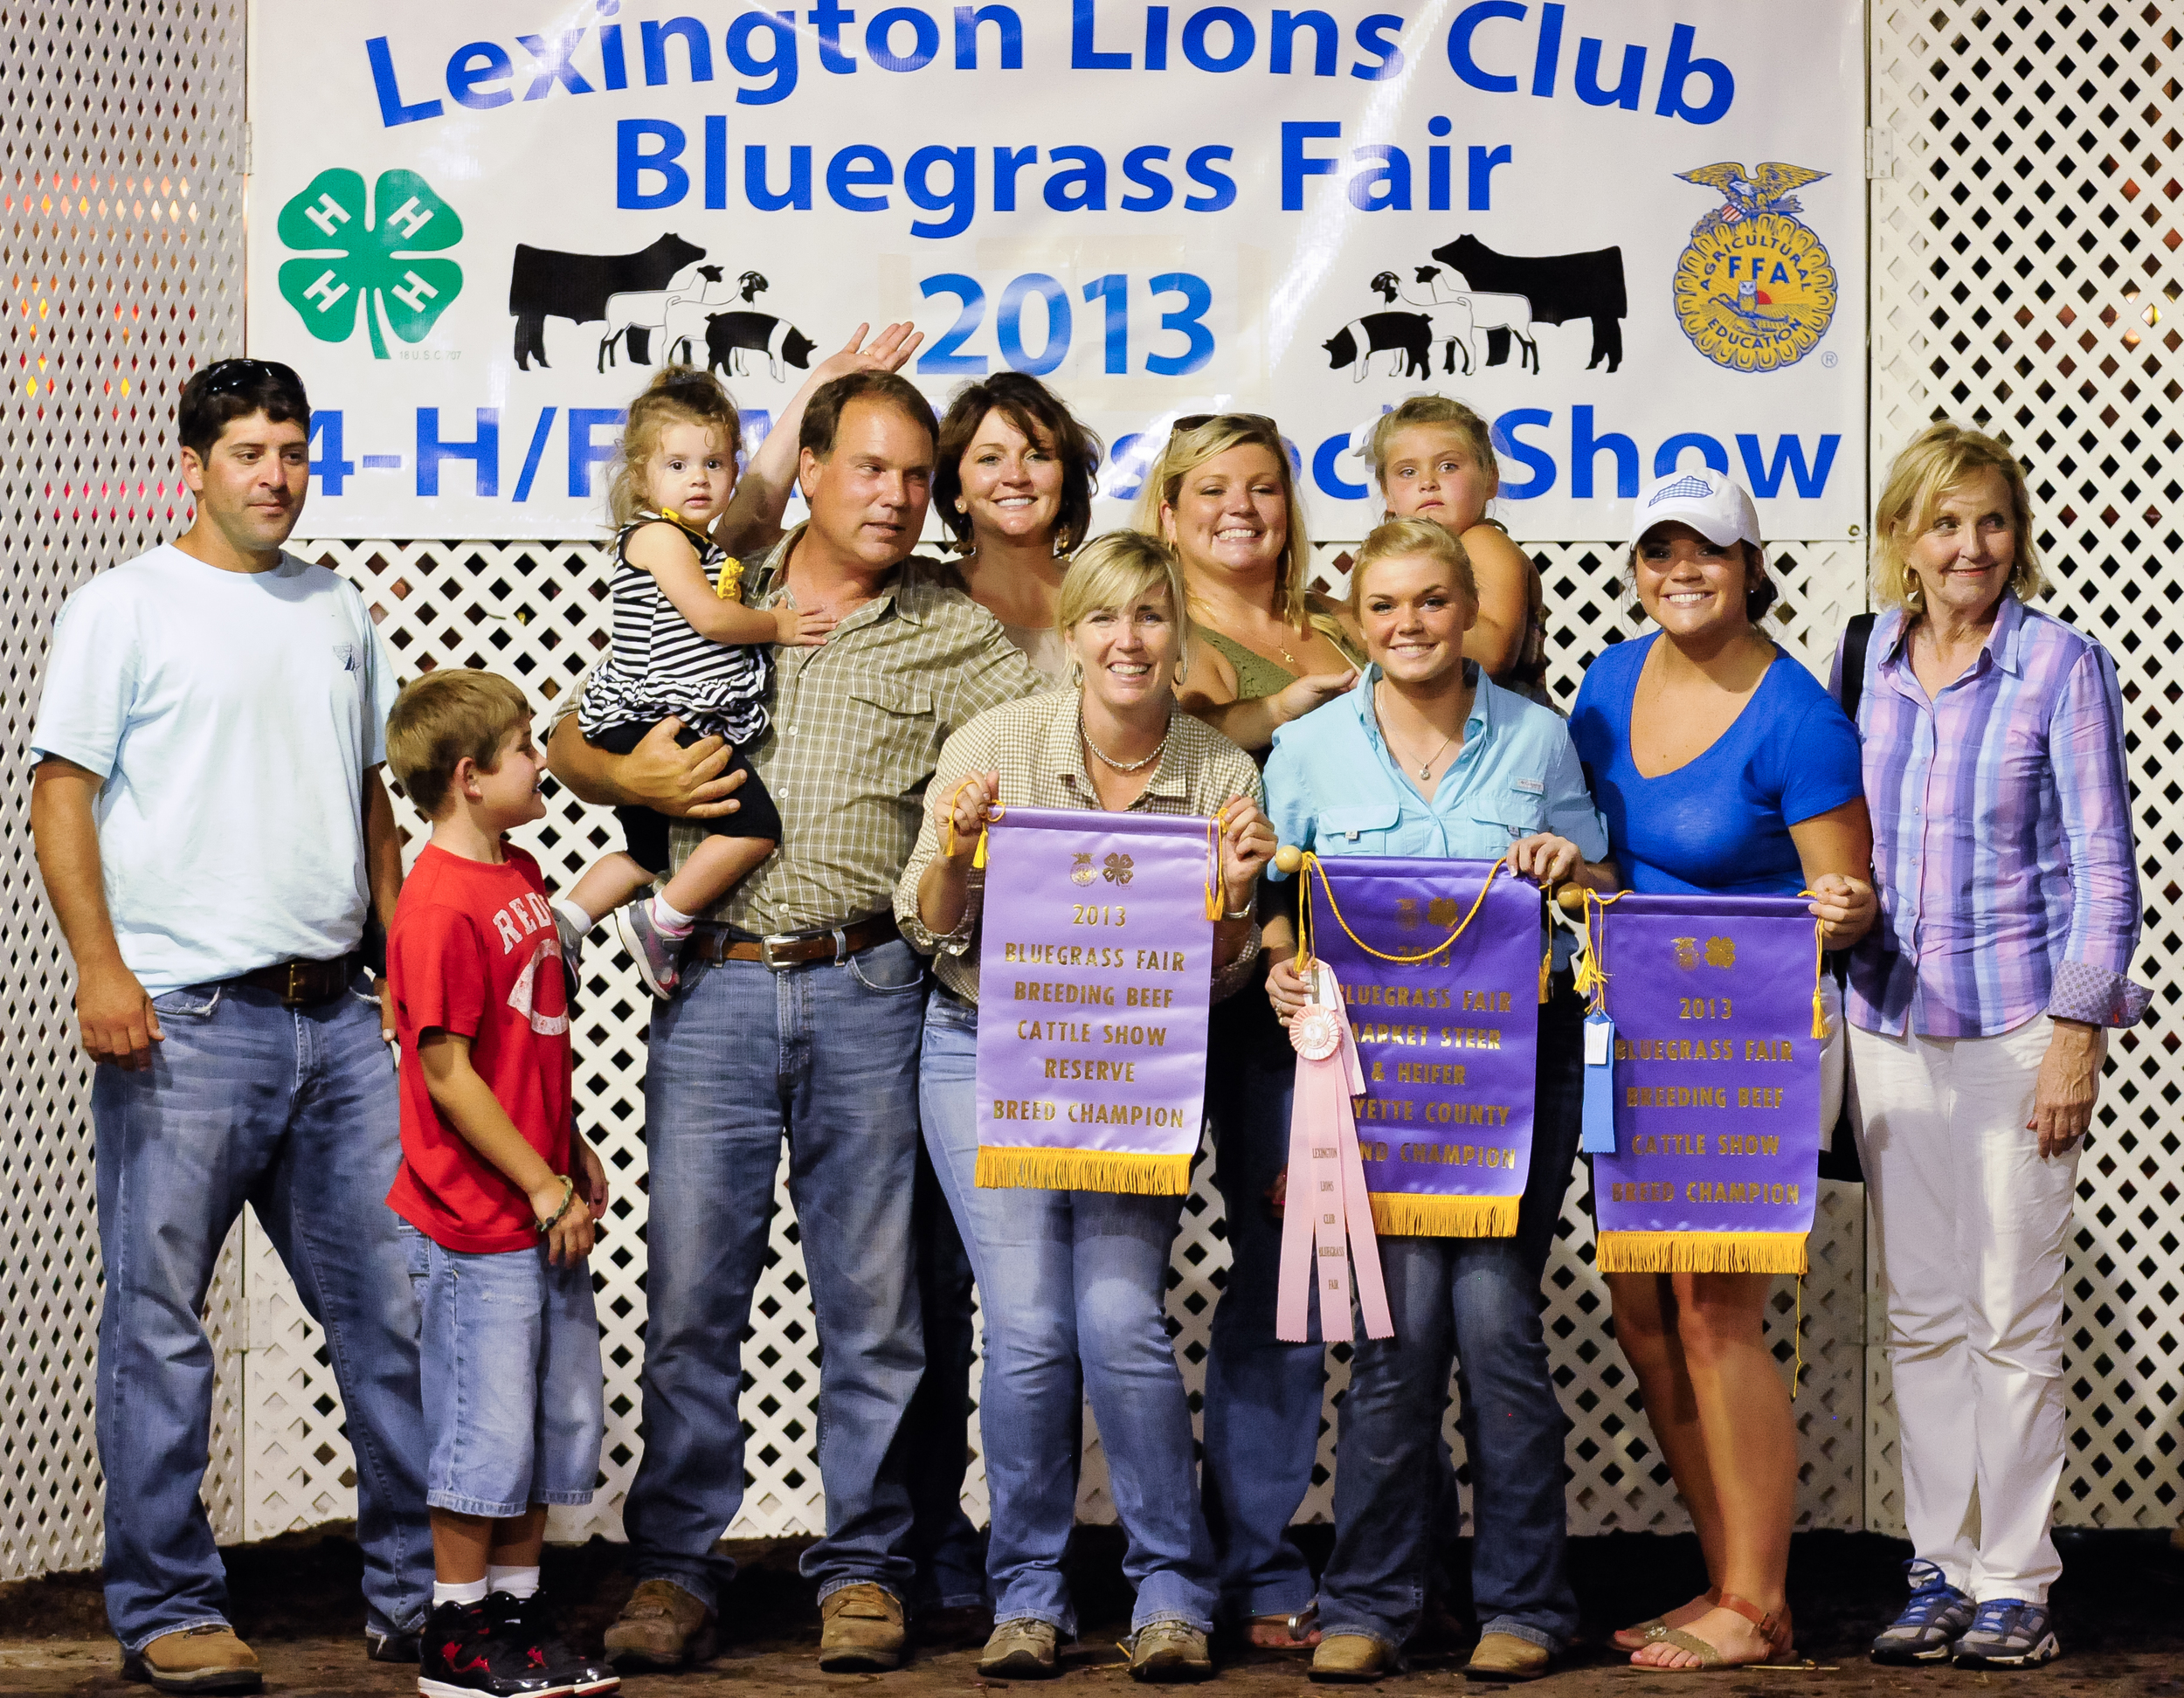 Fayette County Fair.  From Left to Right: Chris Pennington, Blake Pennington, Brooke Pennington, Ed Chenault, Becky Chenault, Susan Chenault Hurt, Christina Chenault Pennington, Katie Hurt, BelLa Pennington, Samantha Chenault, and Sue ChenaulT (Bill Hurt Took the picture).